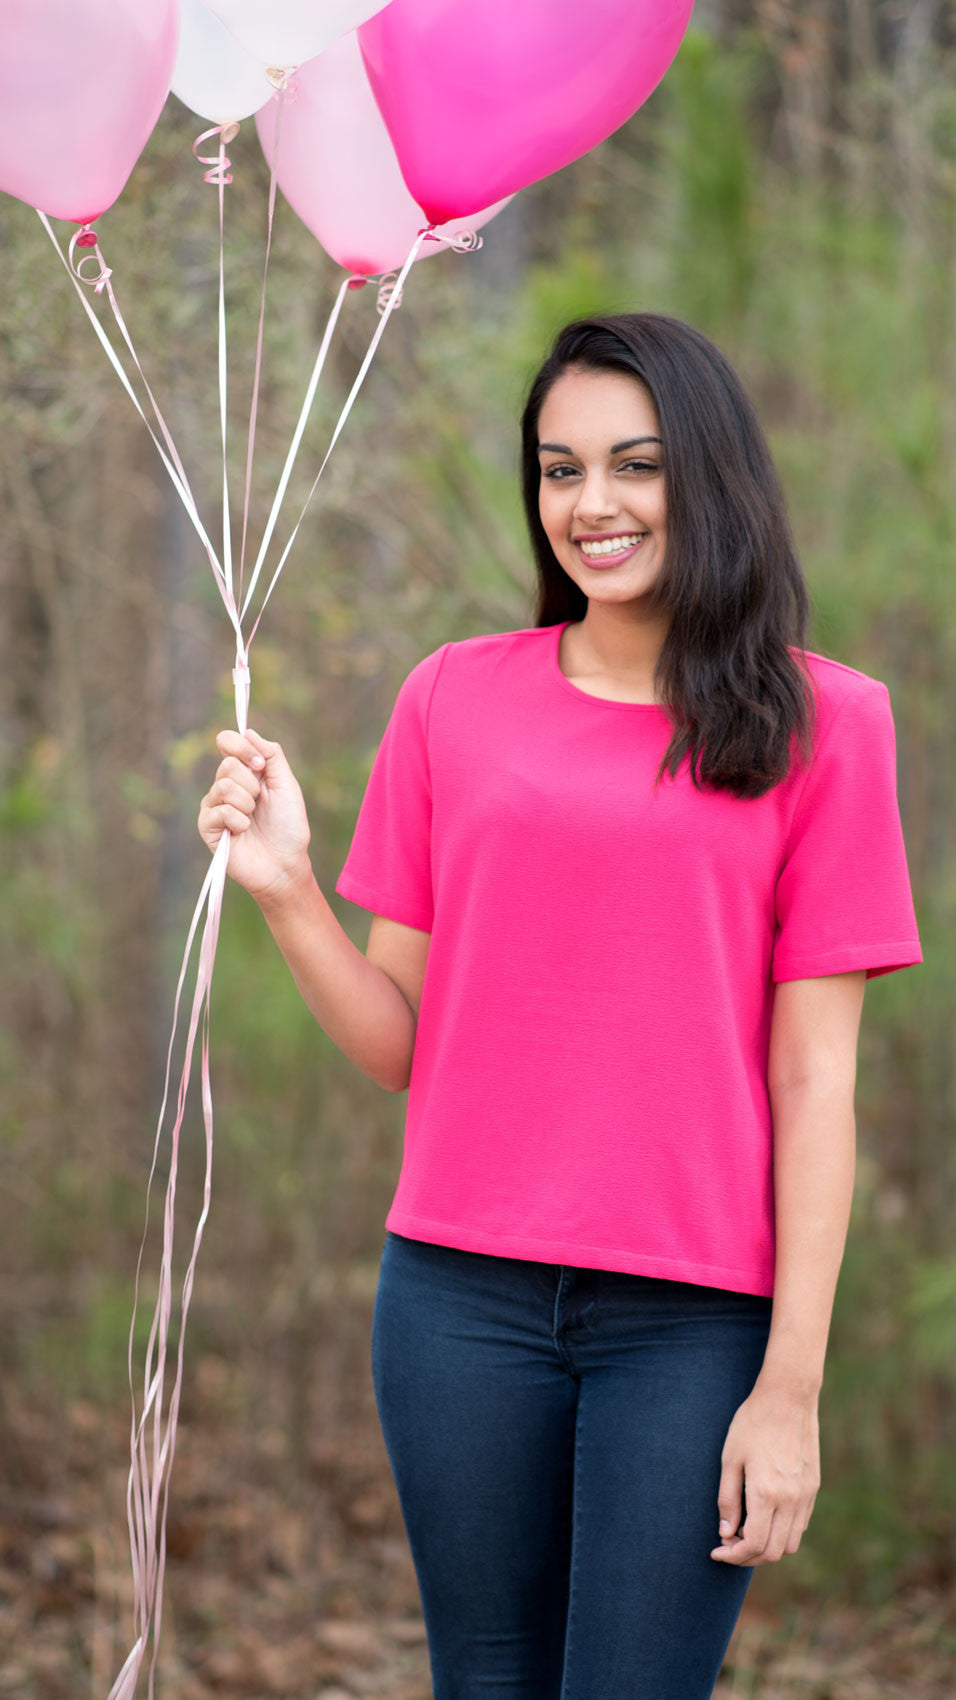 Bright pink Buddy Love top